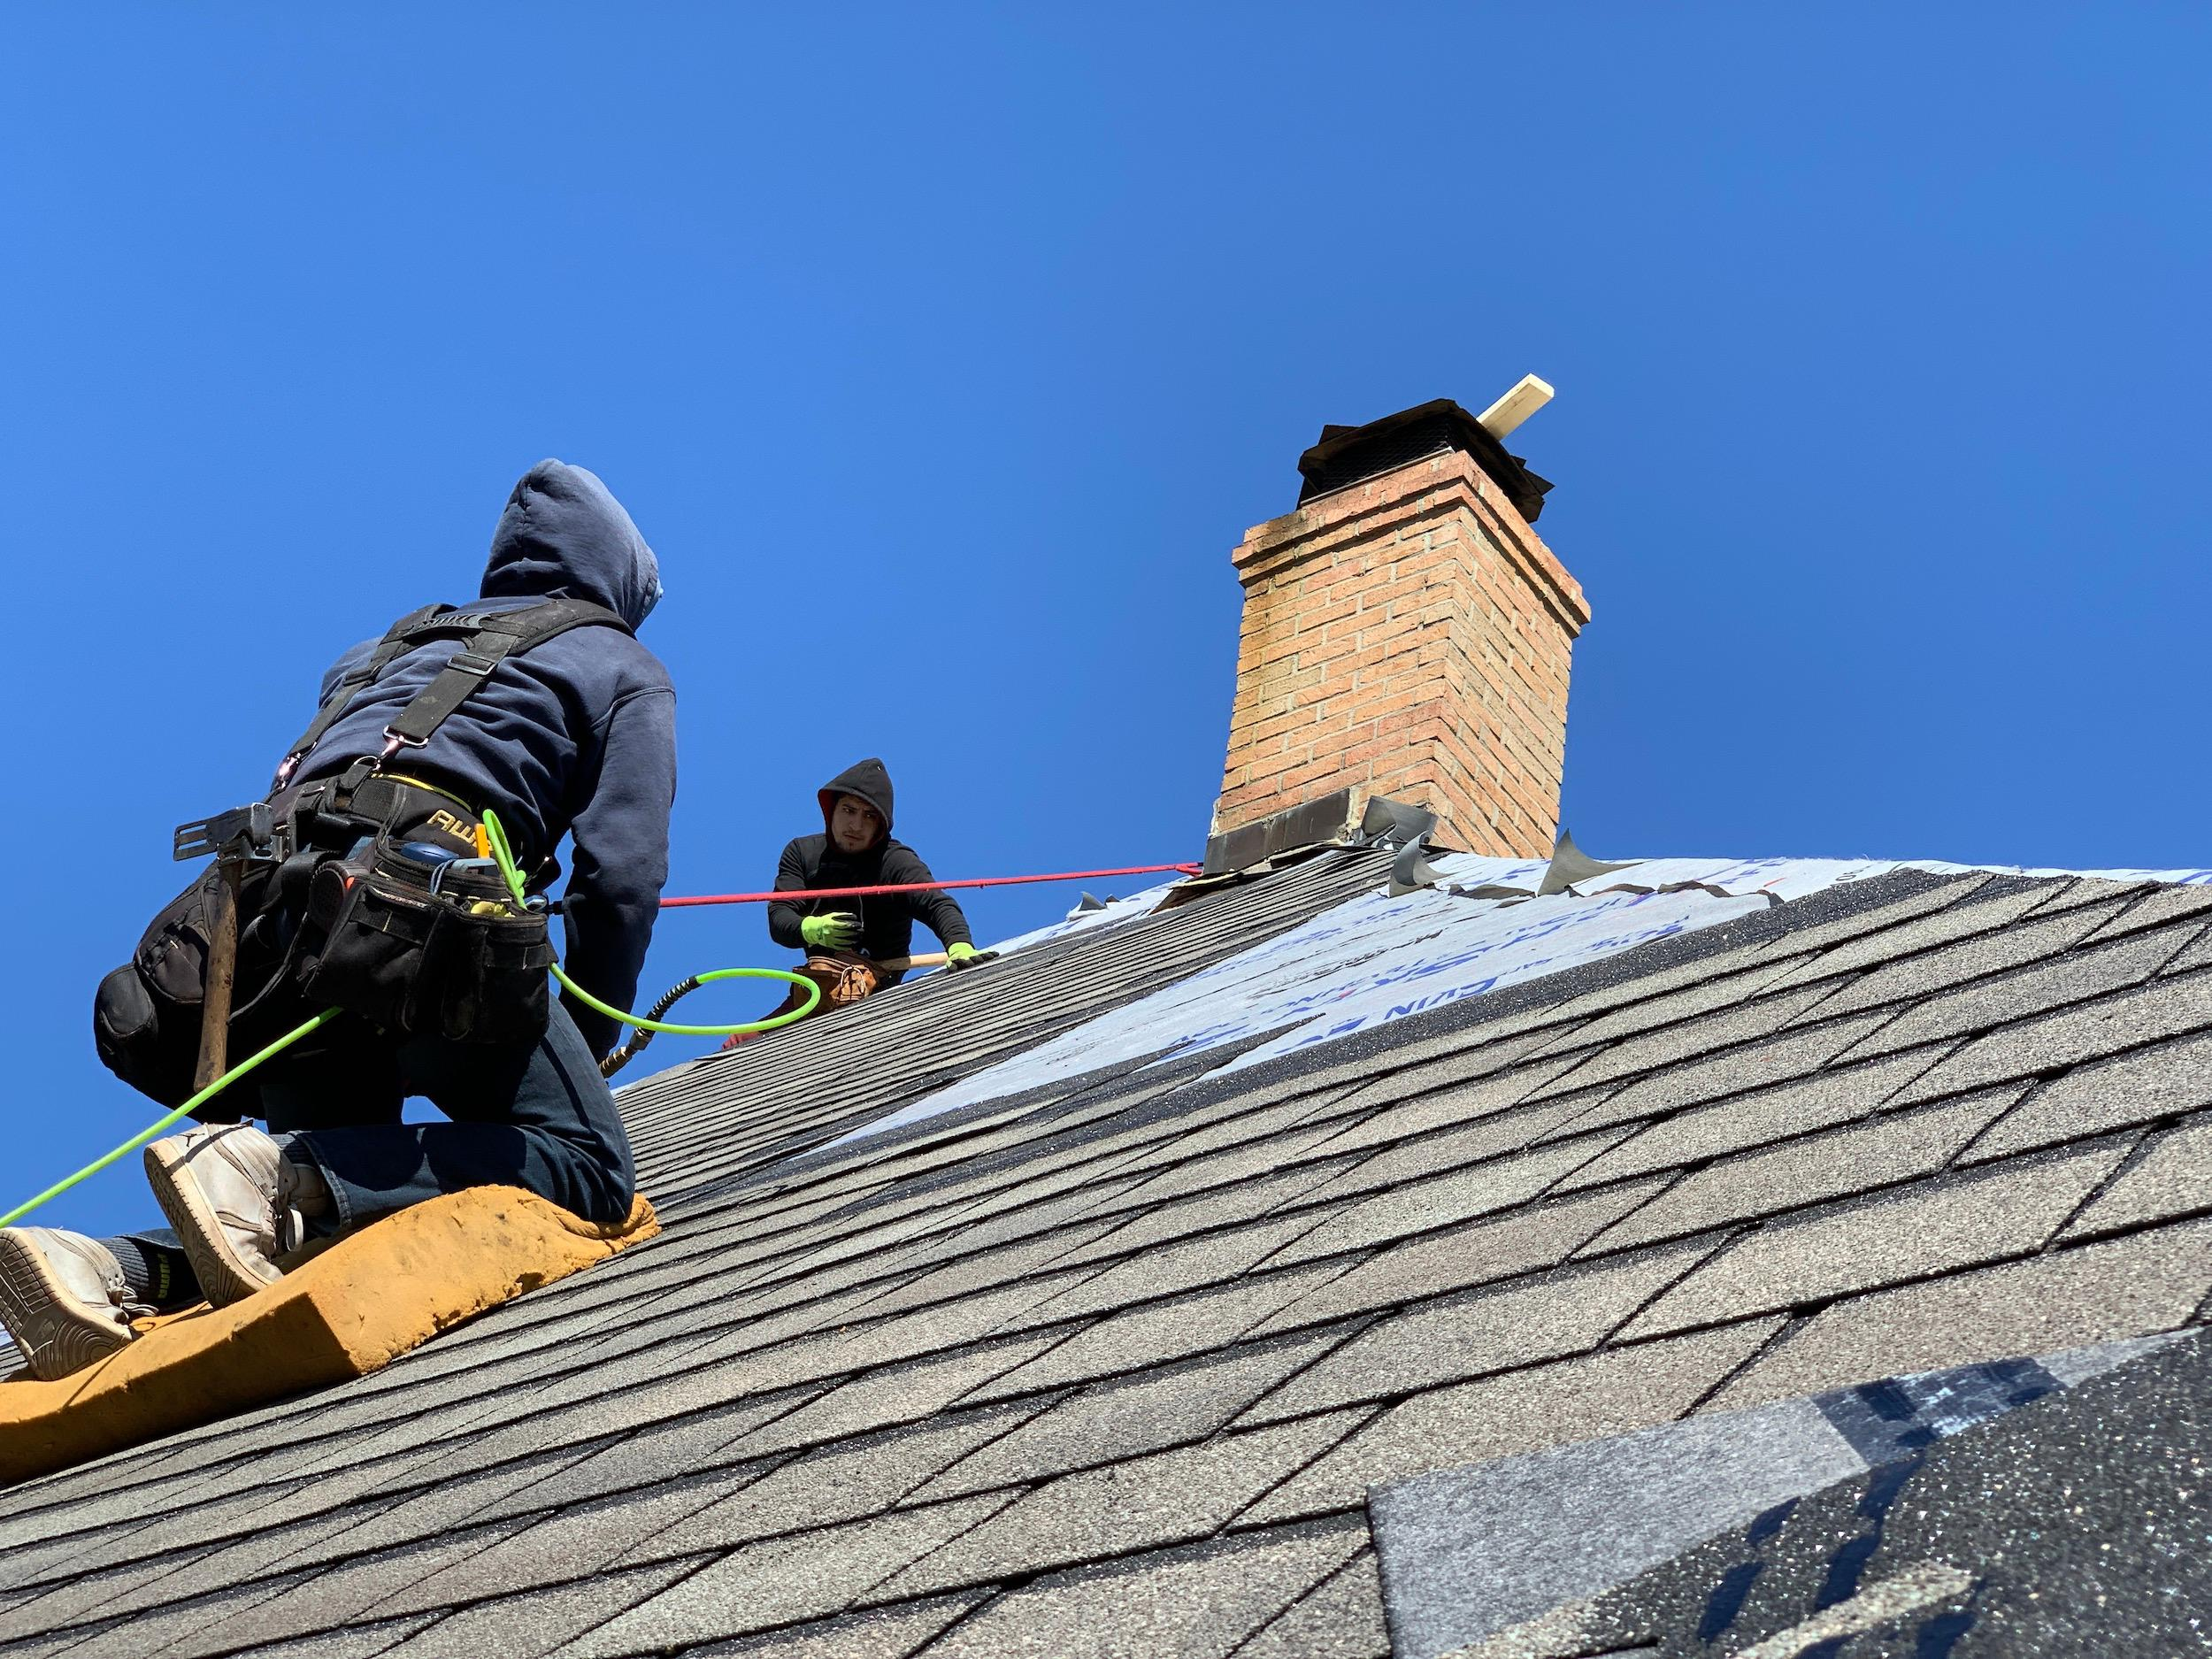 Roofing contractor in Indiana installing a shingle roof on another home.